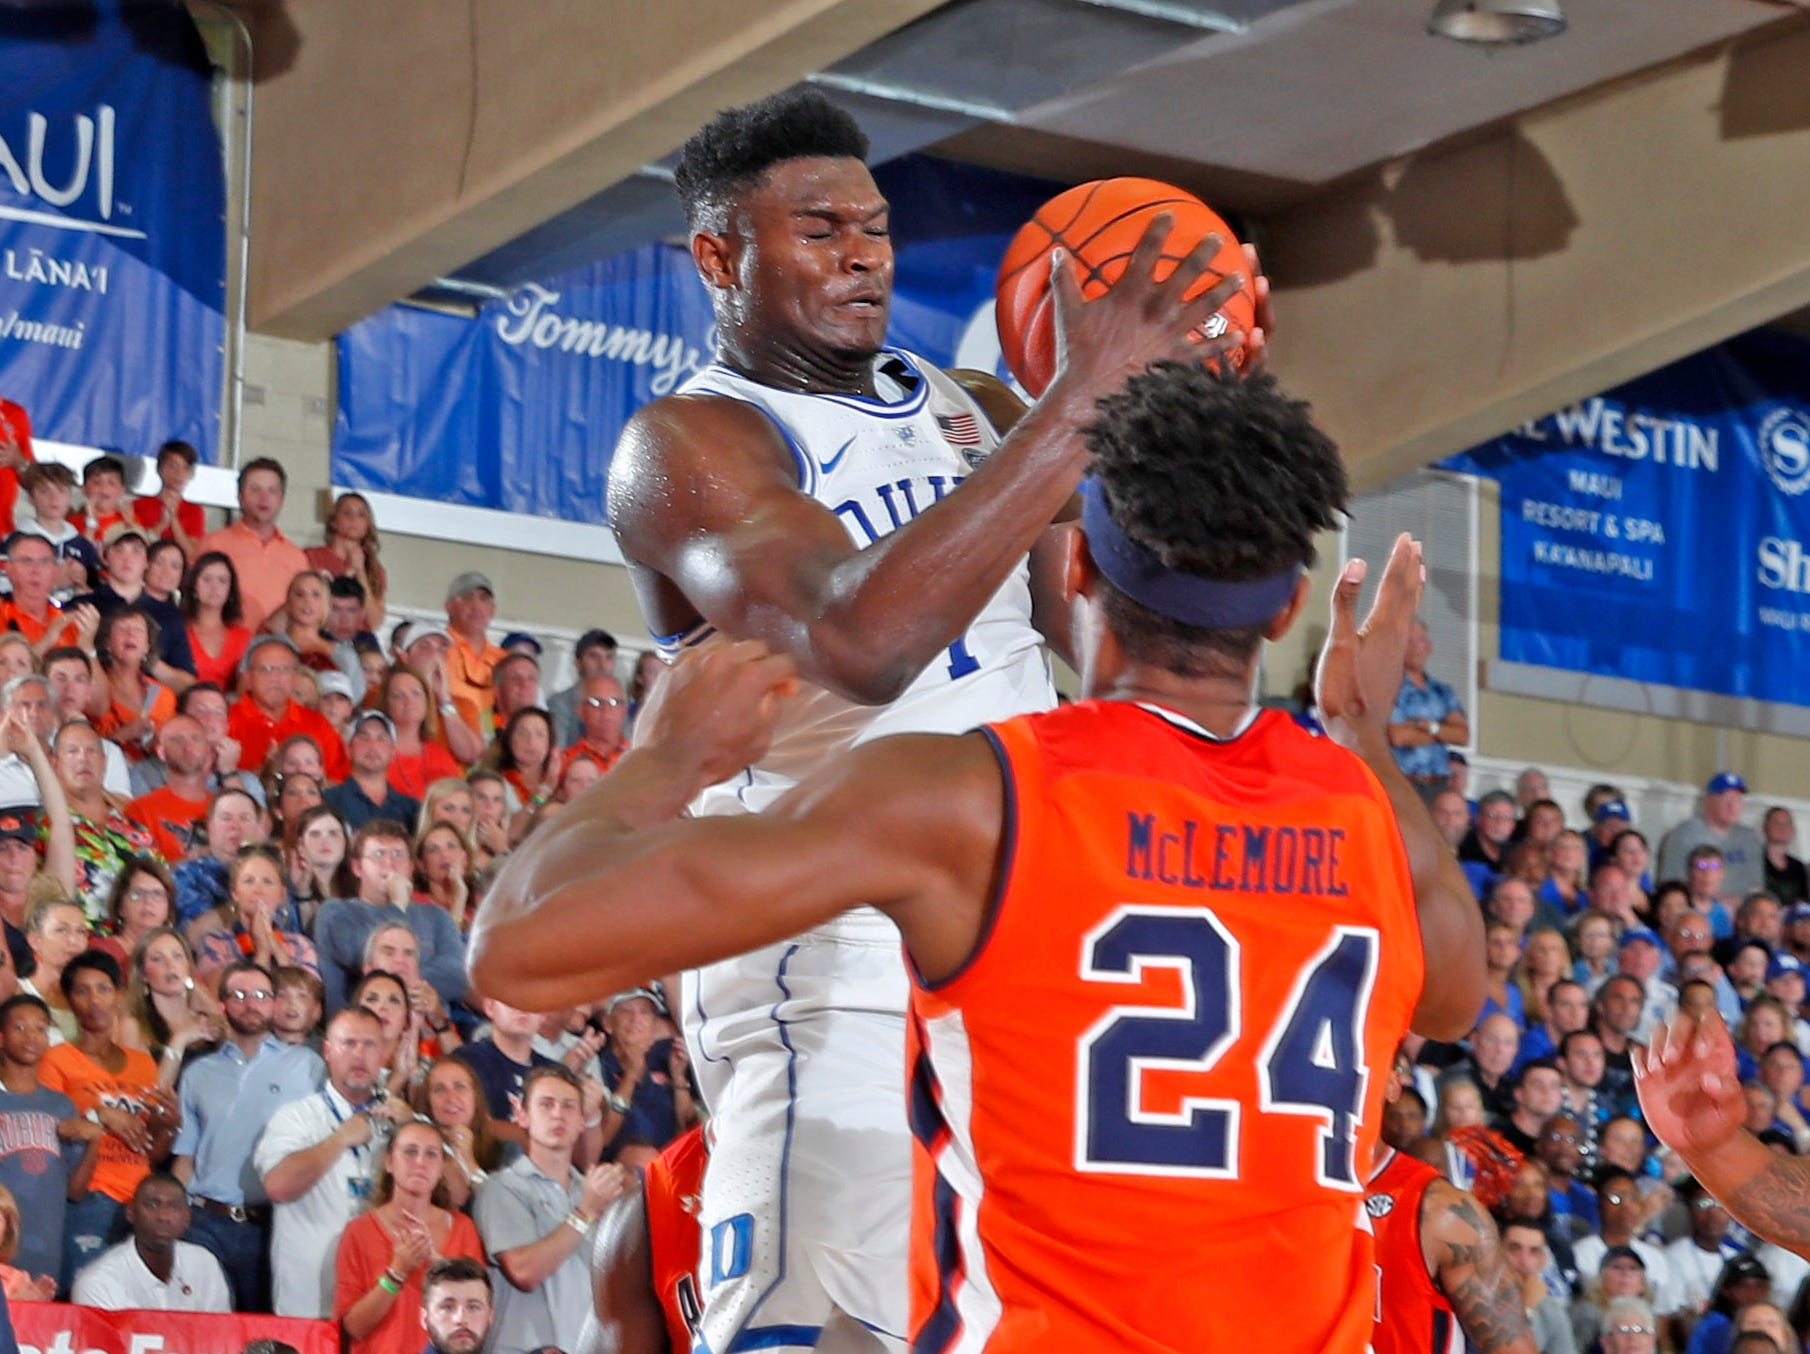 Nov 20, 2018; Lahaina, HI, USA; Duke Blue Devils forward Zion Williamson (1) grabs a rebound against Auburn Tigers forward Anfernee McLemore (24) in the first half during the second round of the Maui Jim Maui Invitational at Lahaina Civic Center. Mandatory Credit: Brian Spurlock-USA TODAY Sports